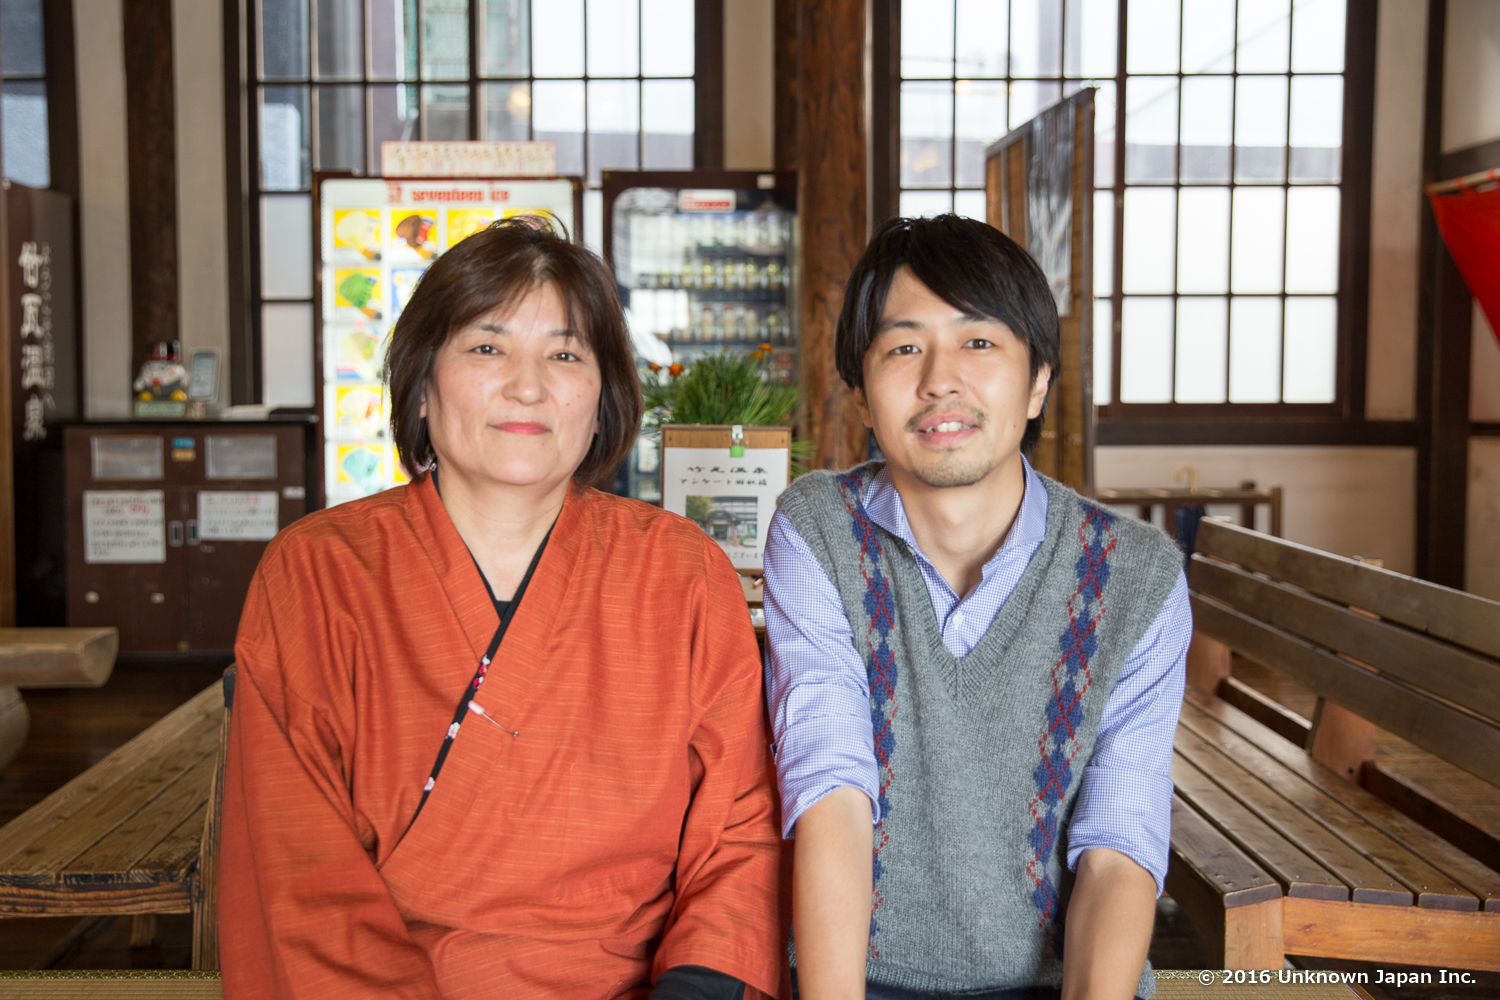 With a reception staff member,  Setsuyo , in the lounge